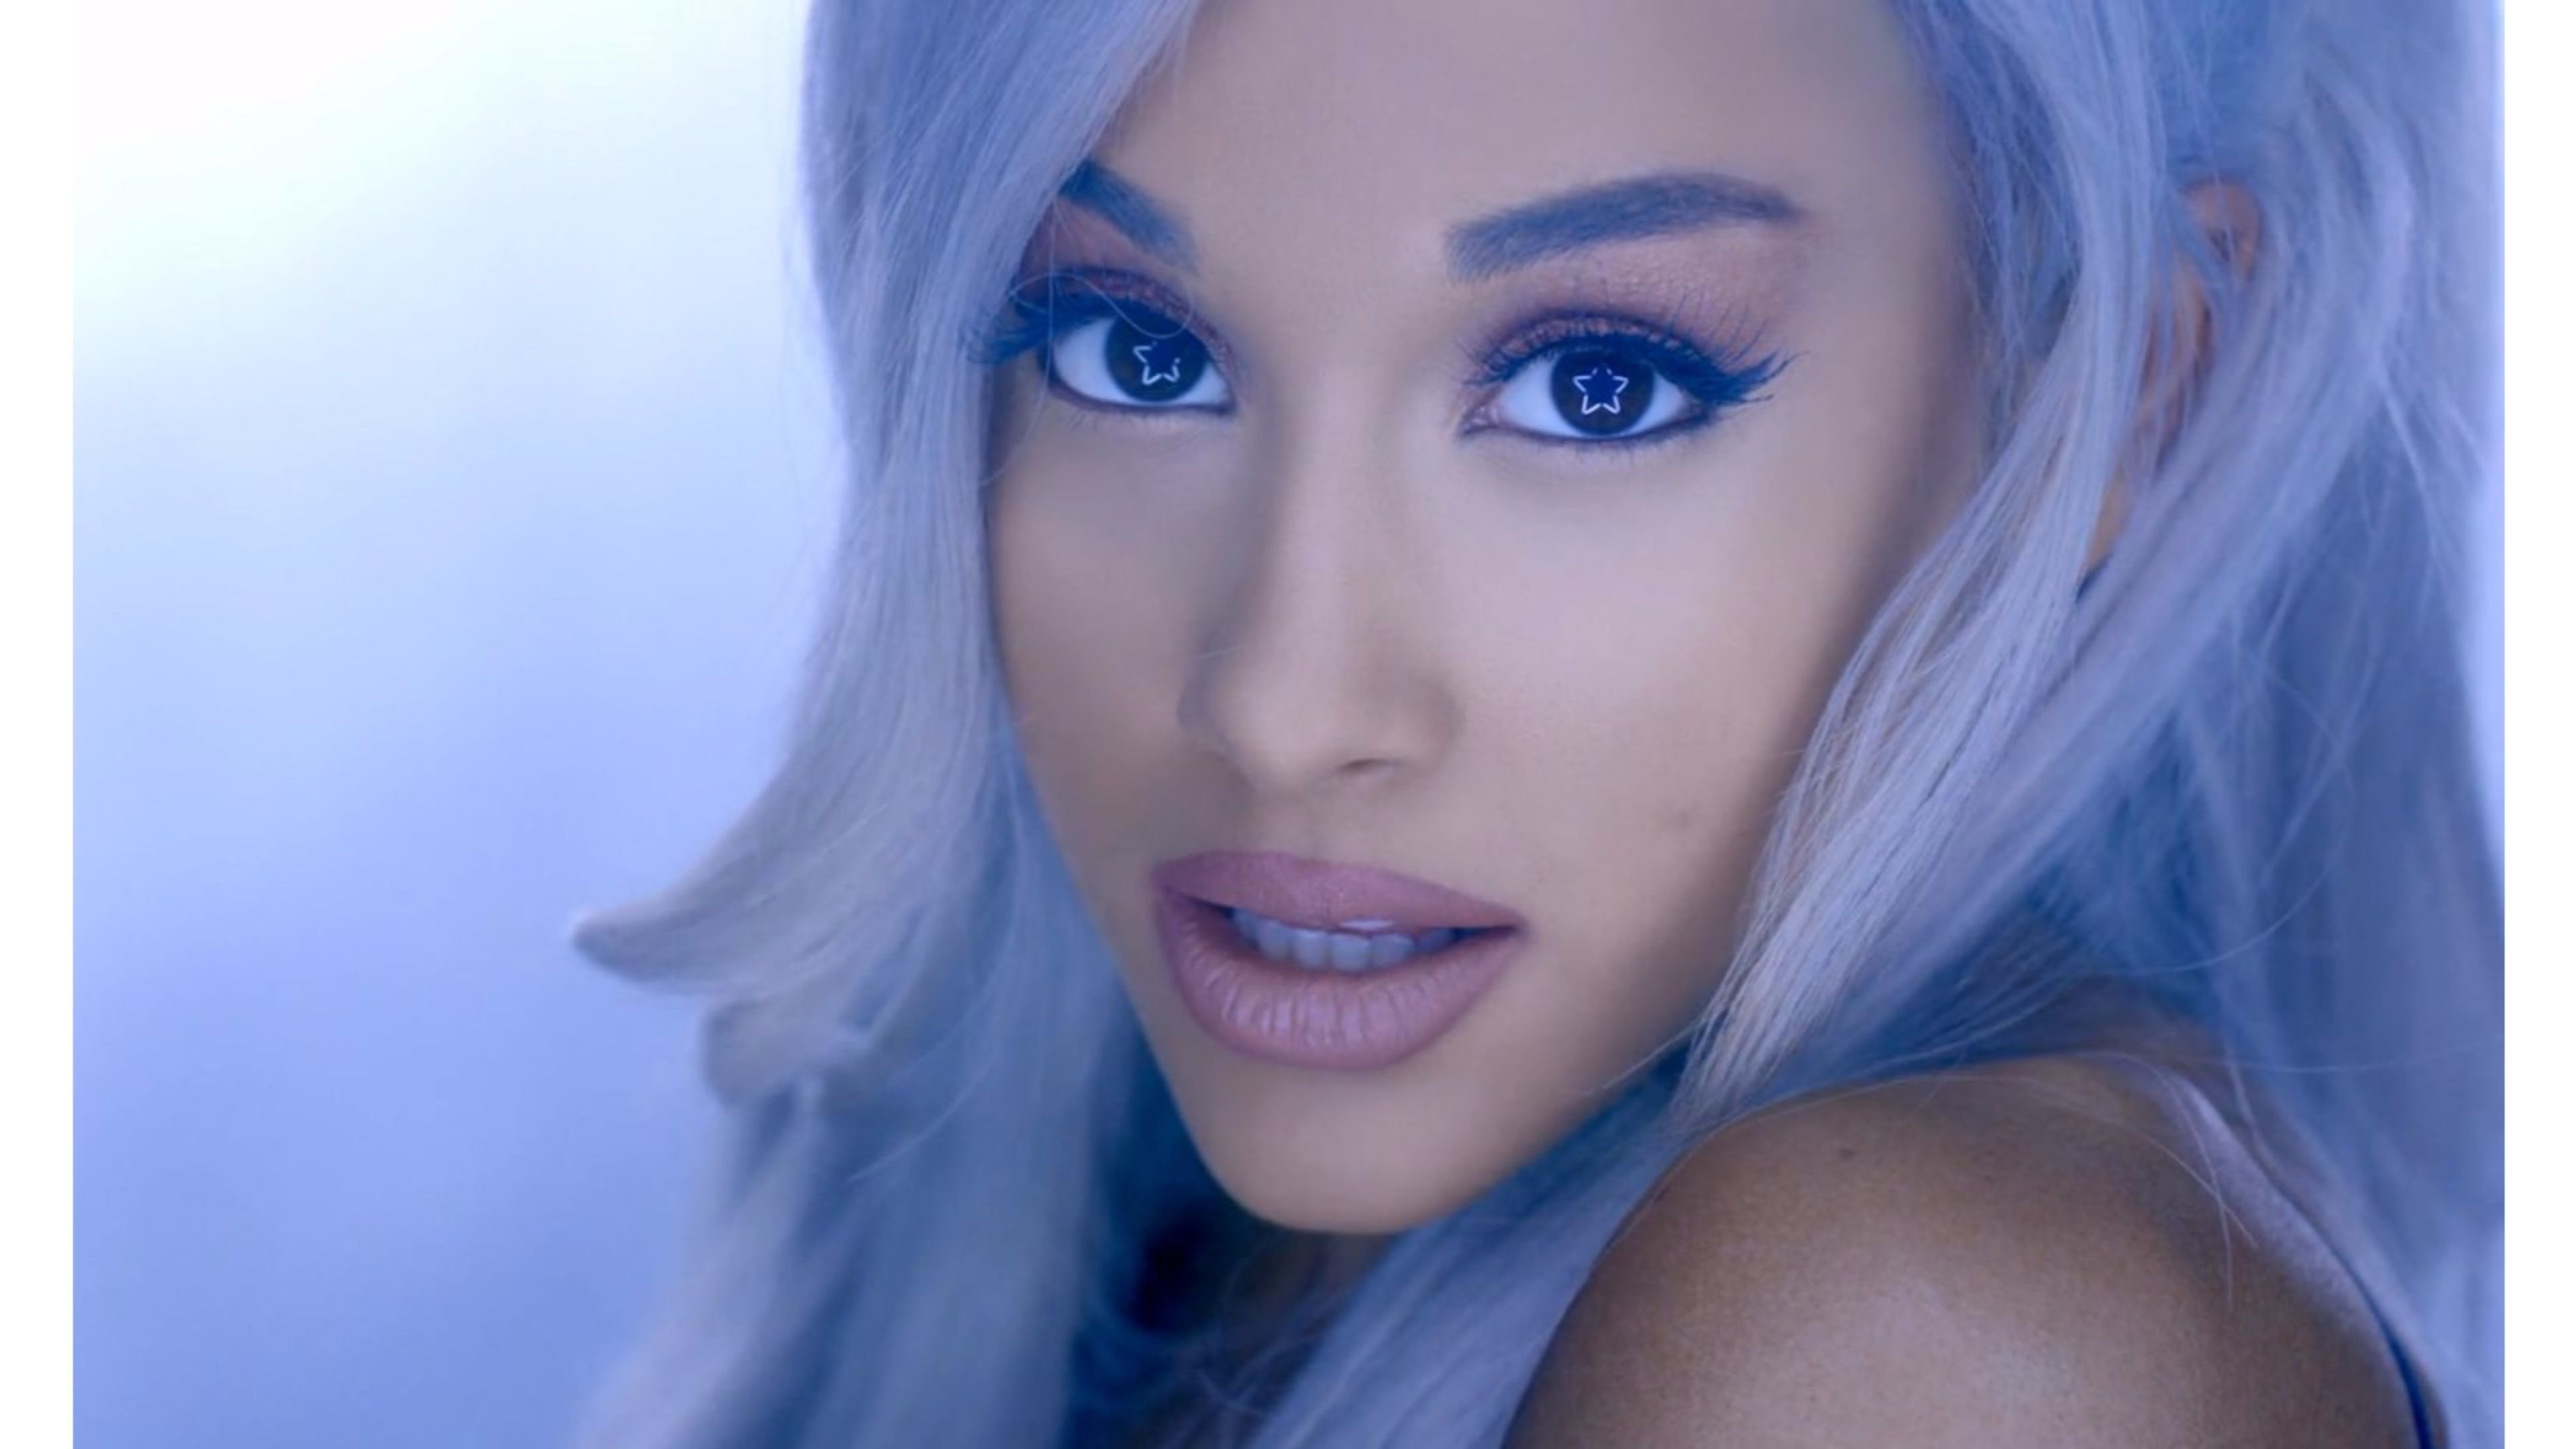 ariana grande wallpapers 77 images